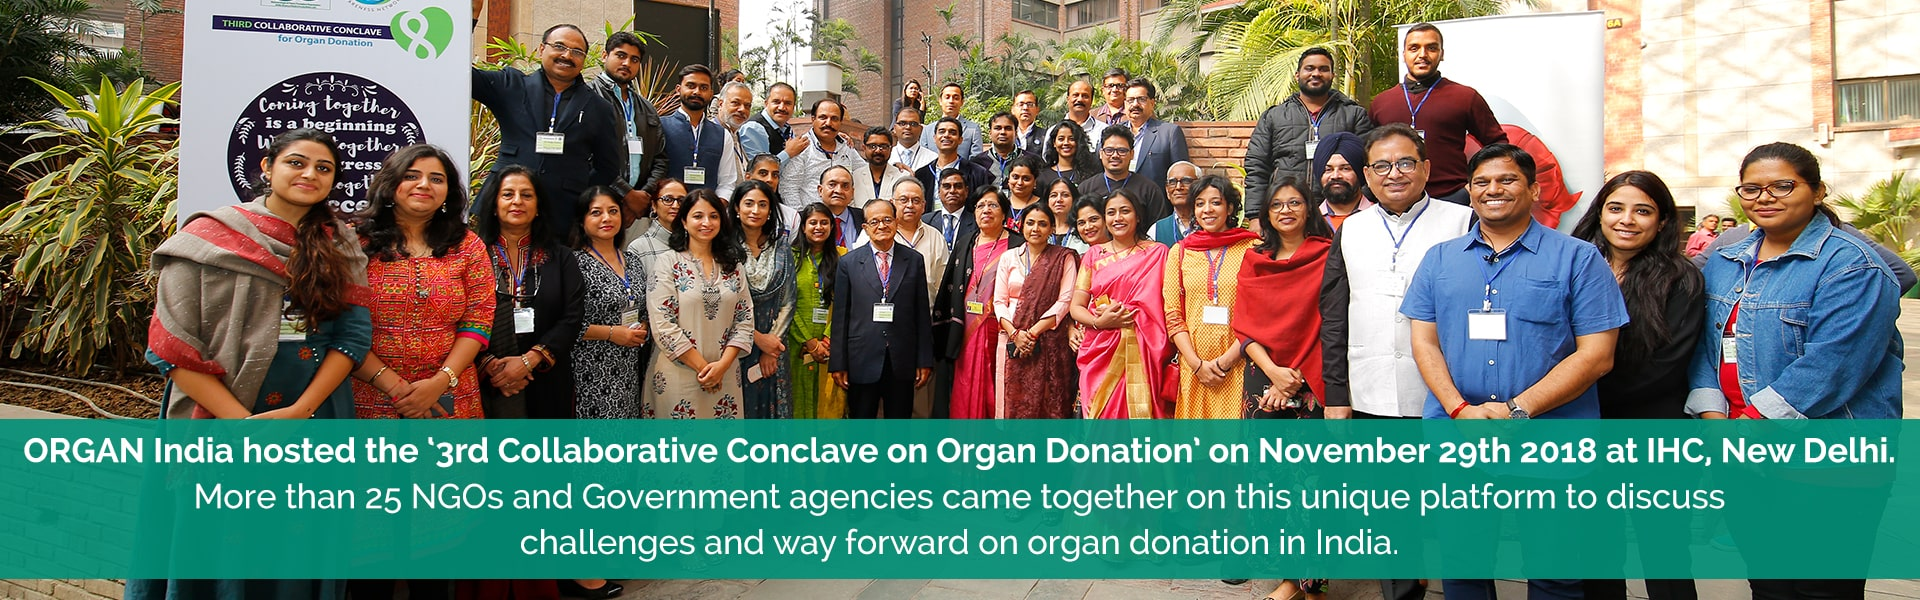 Unique platform to discuss challenges and way forward on organ donation in India